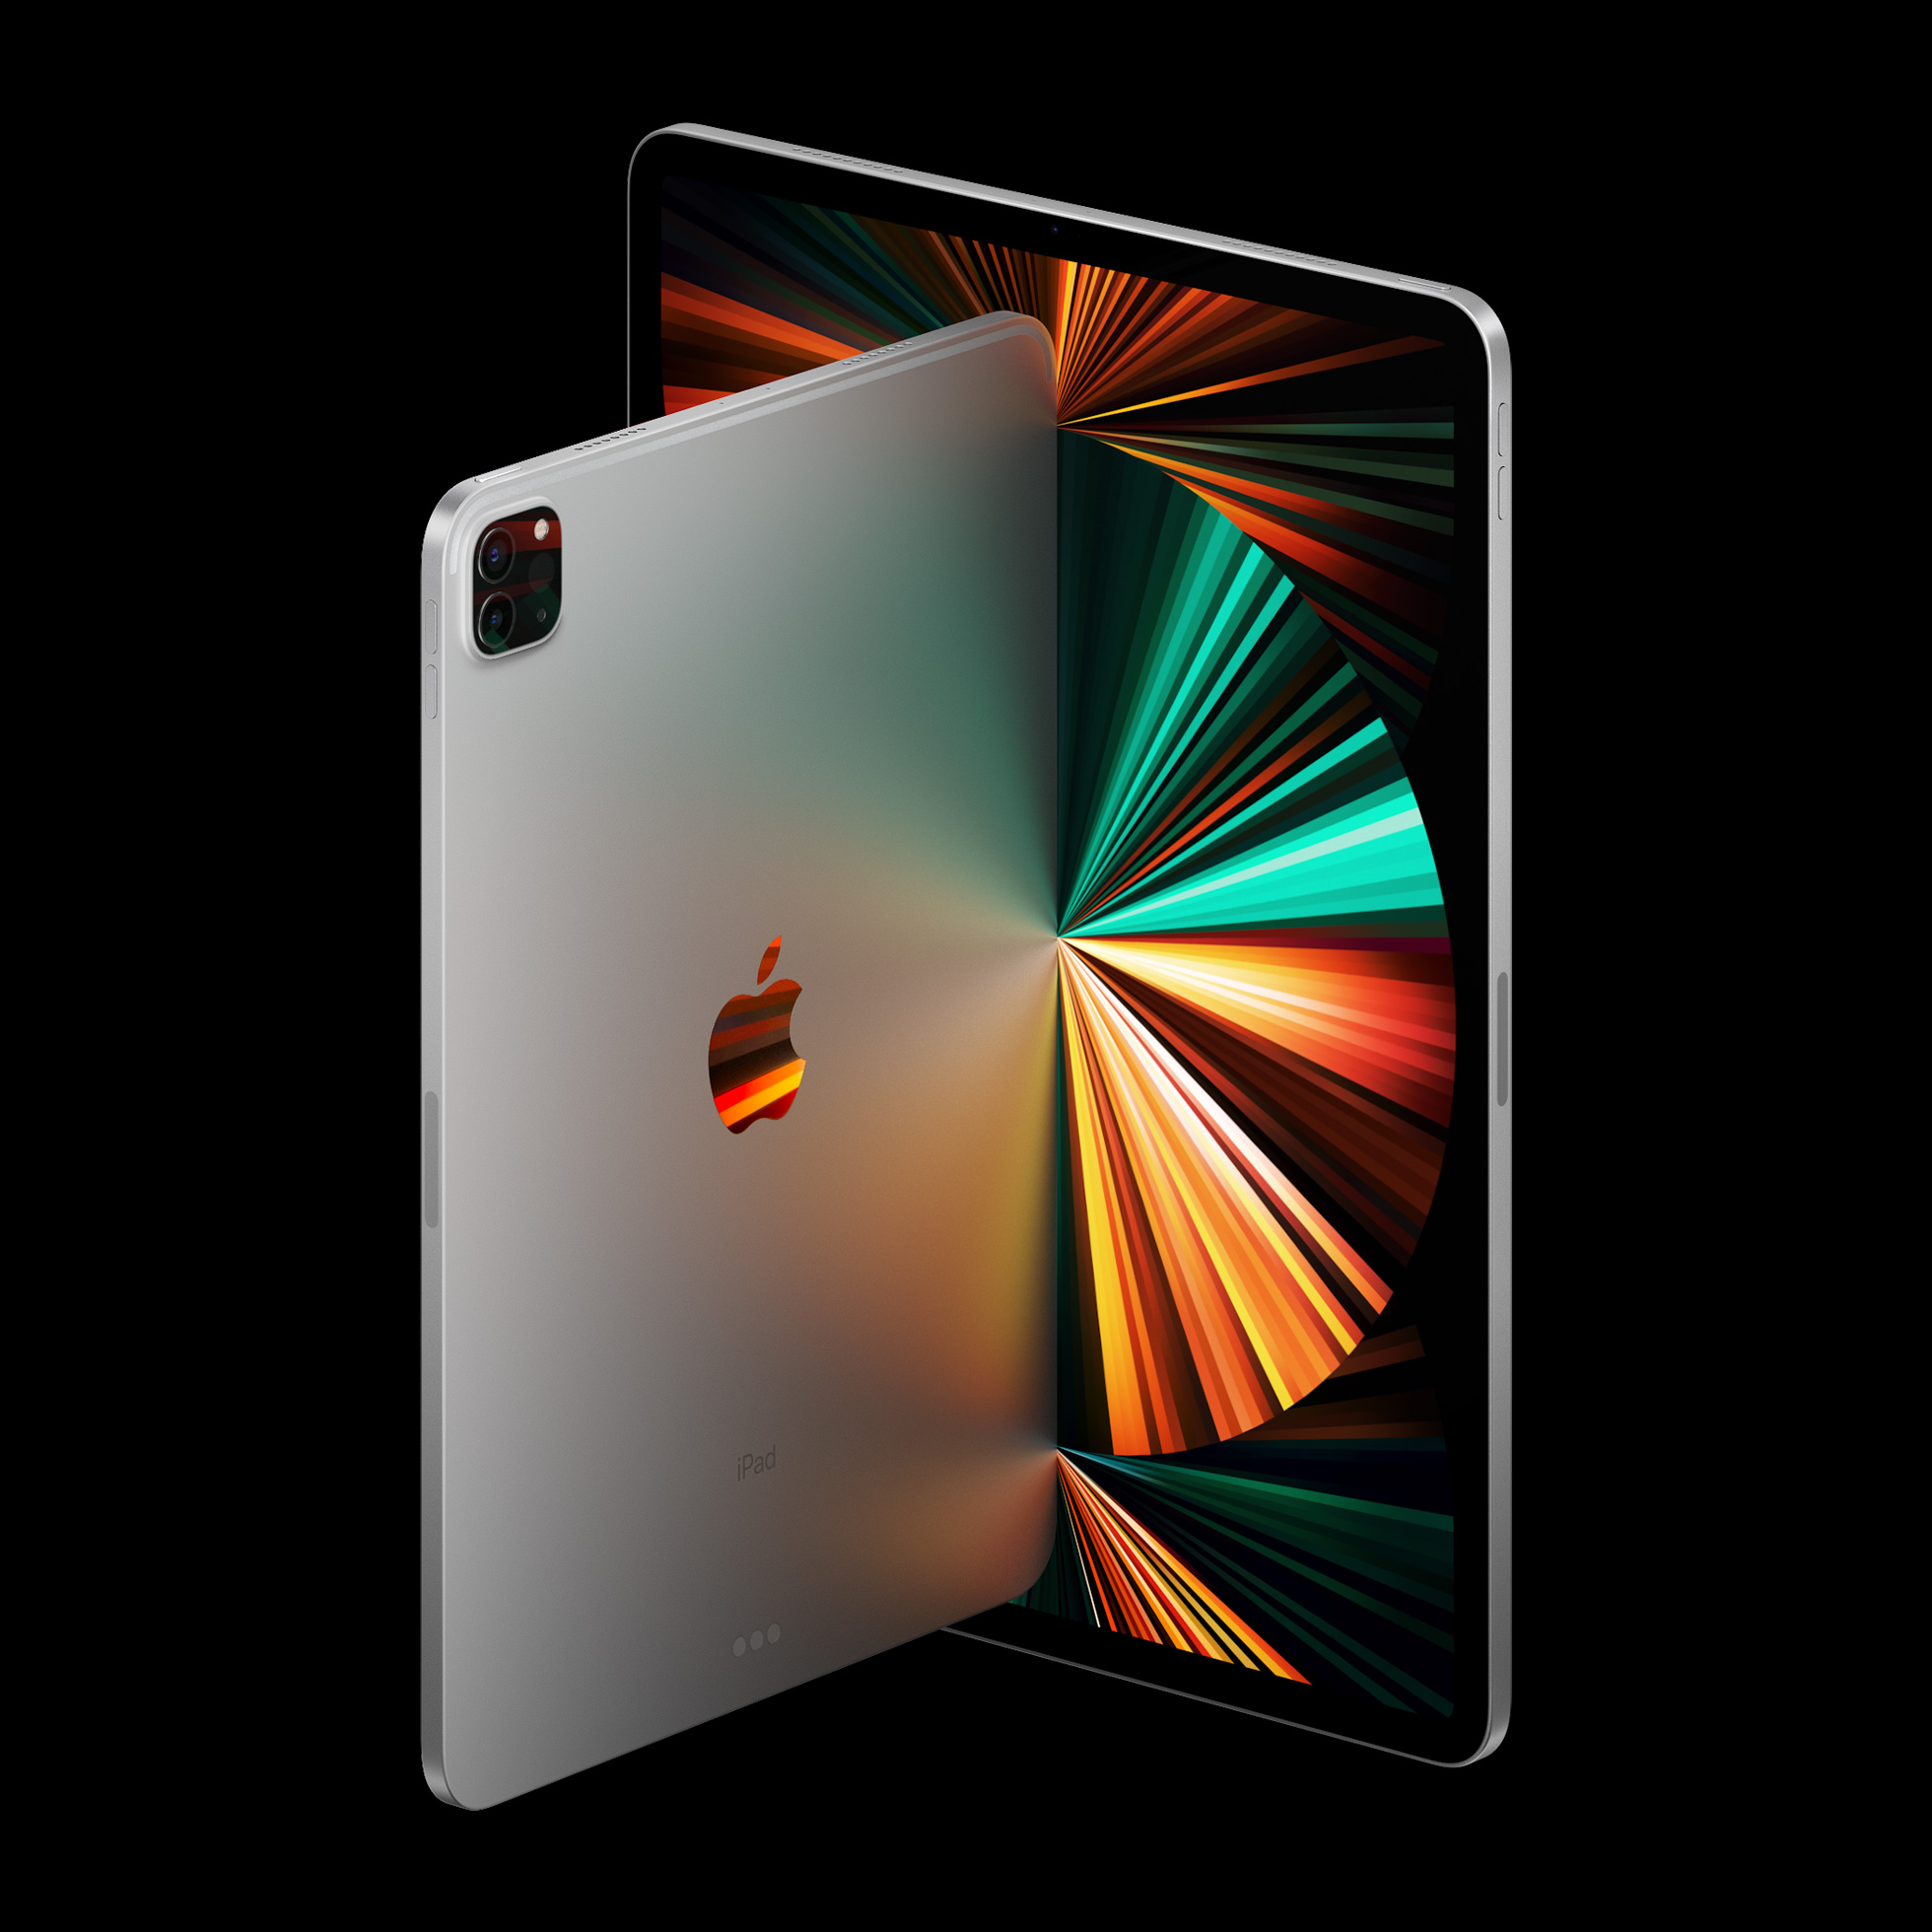 M1 Chip, 5G, And Liquid Retina XDR Display Comes To The New iPad Pro